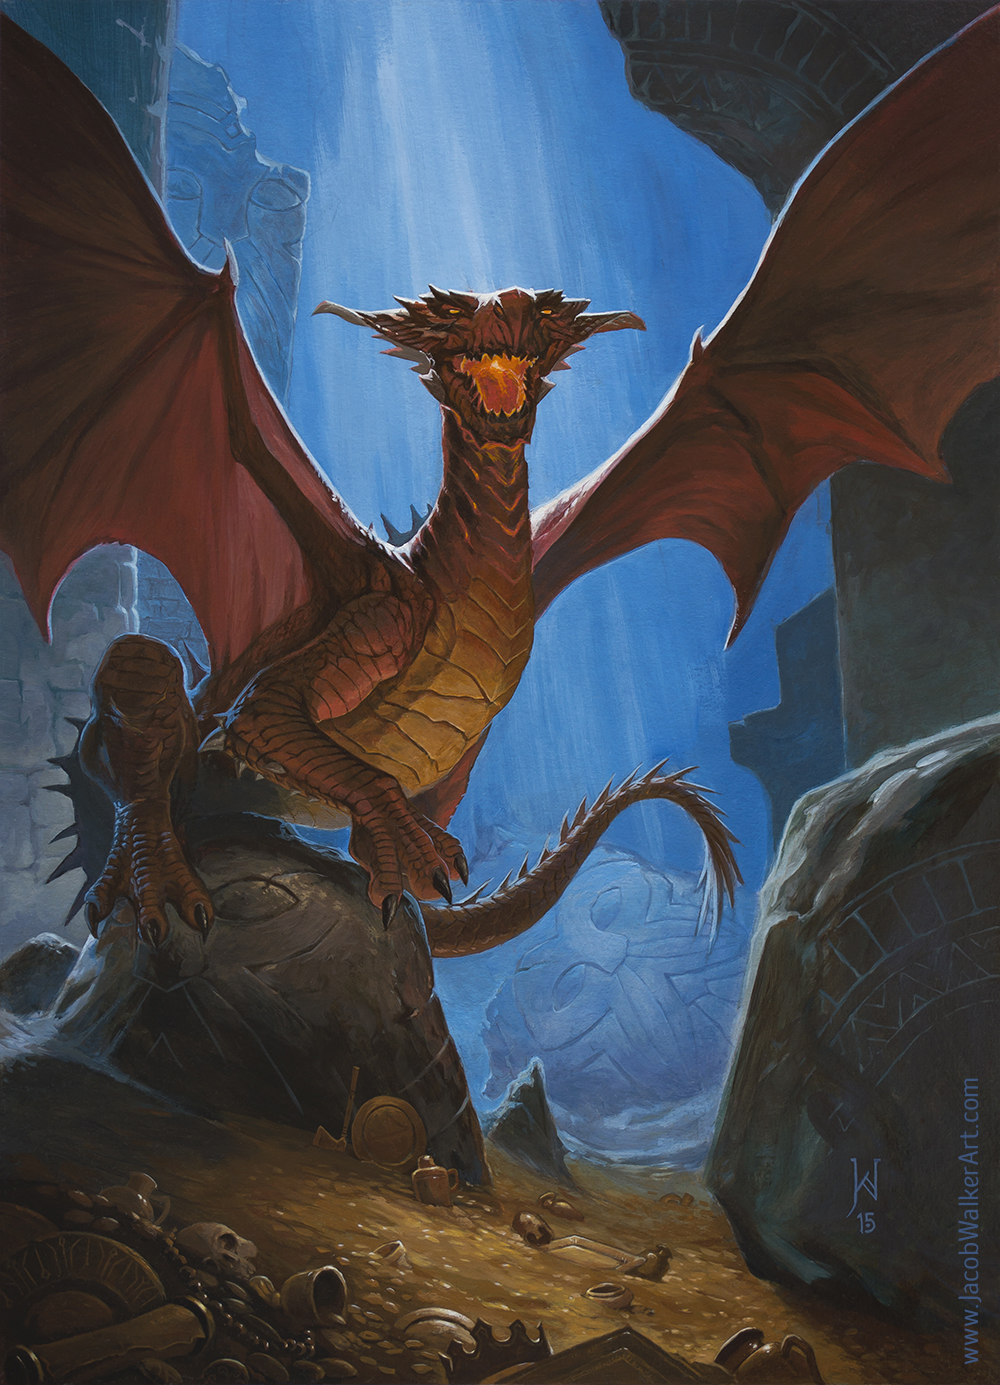 The Red Dragon is the classic Dungeons & Dragons or Pathfinder RPG foe. Adventurers beware!